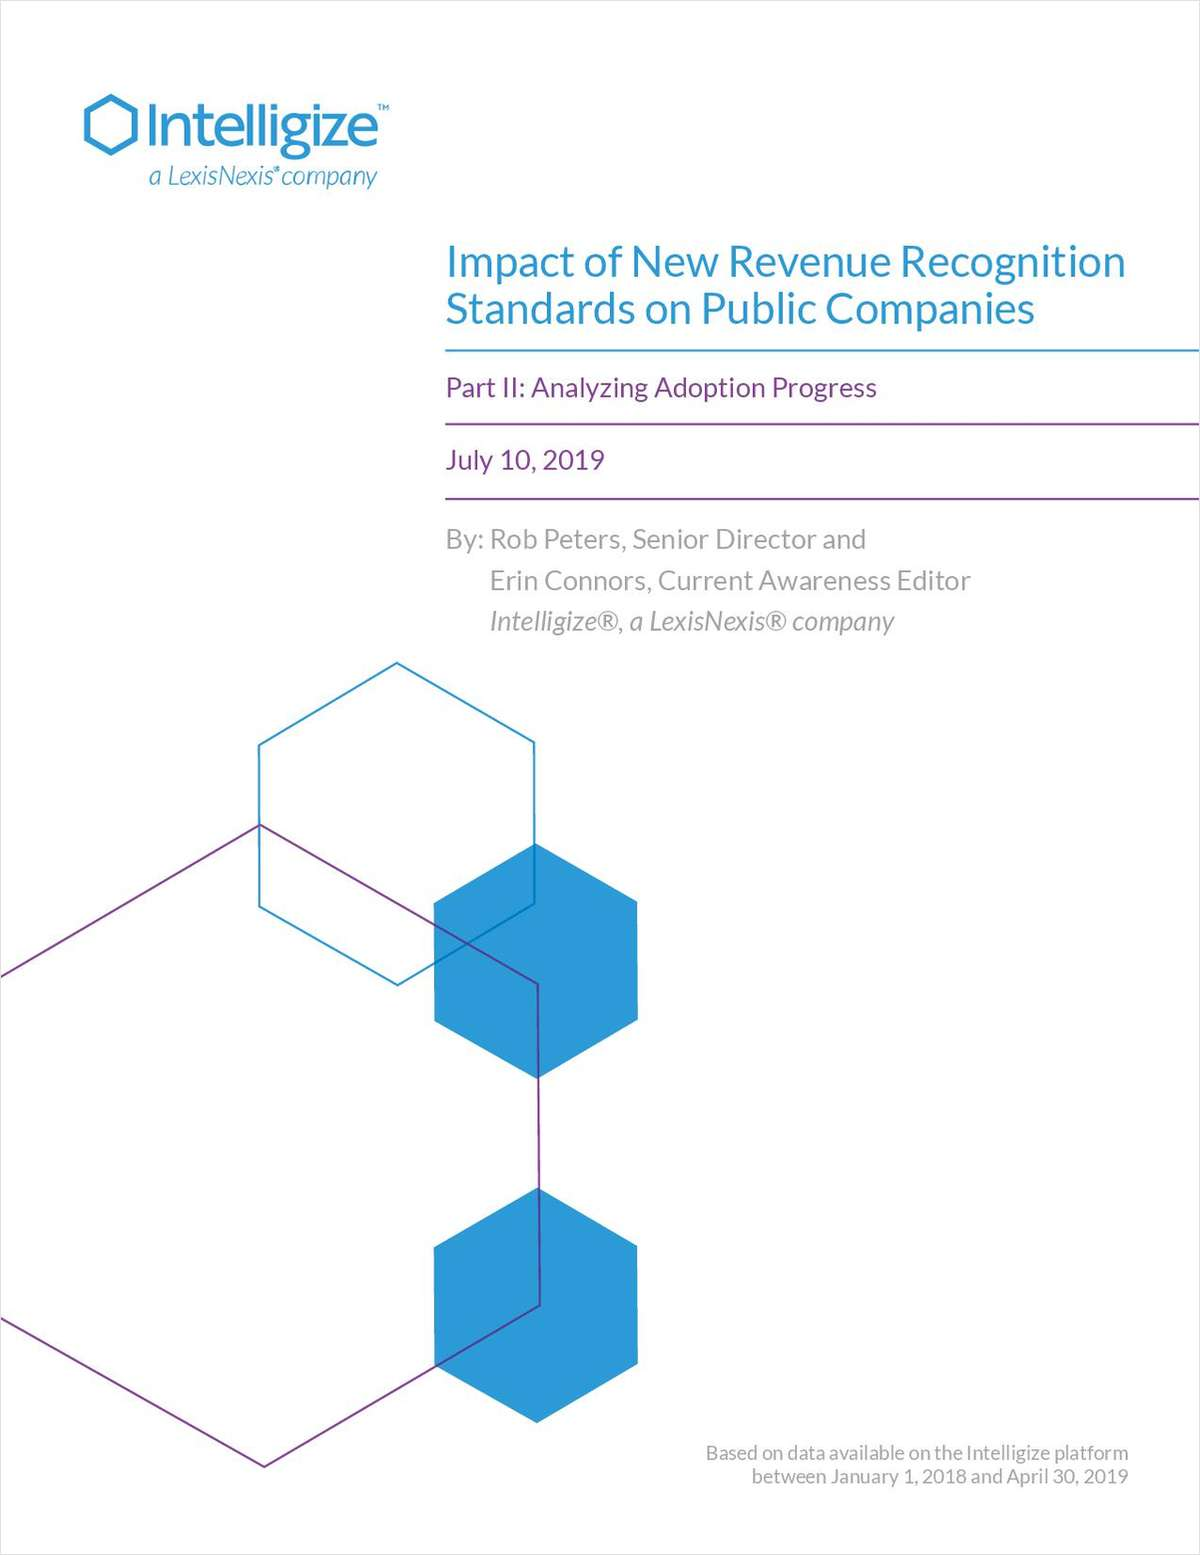 Impact of New Revenue Recognition Standards on Public Companies